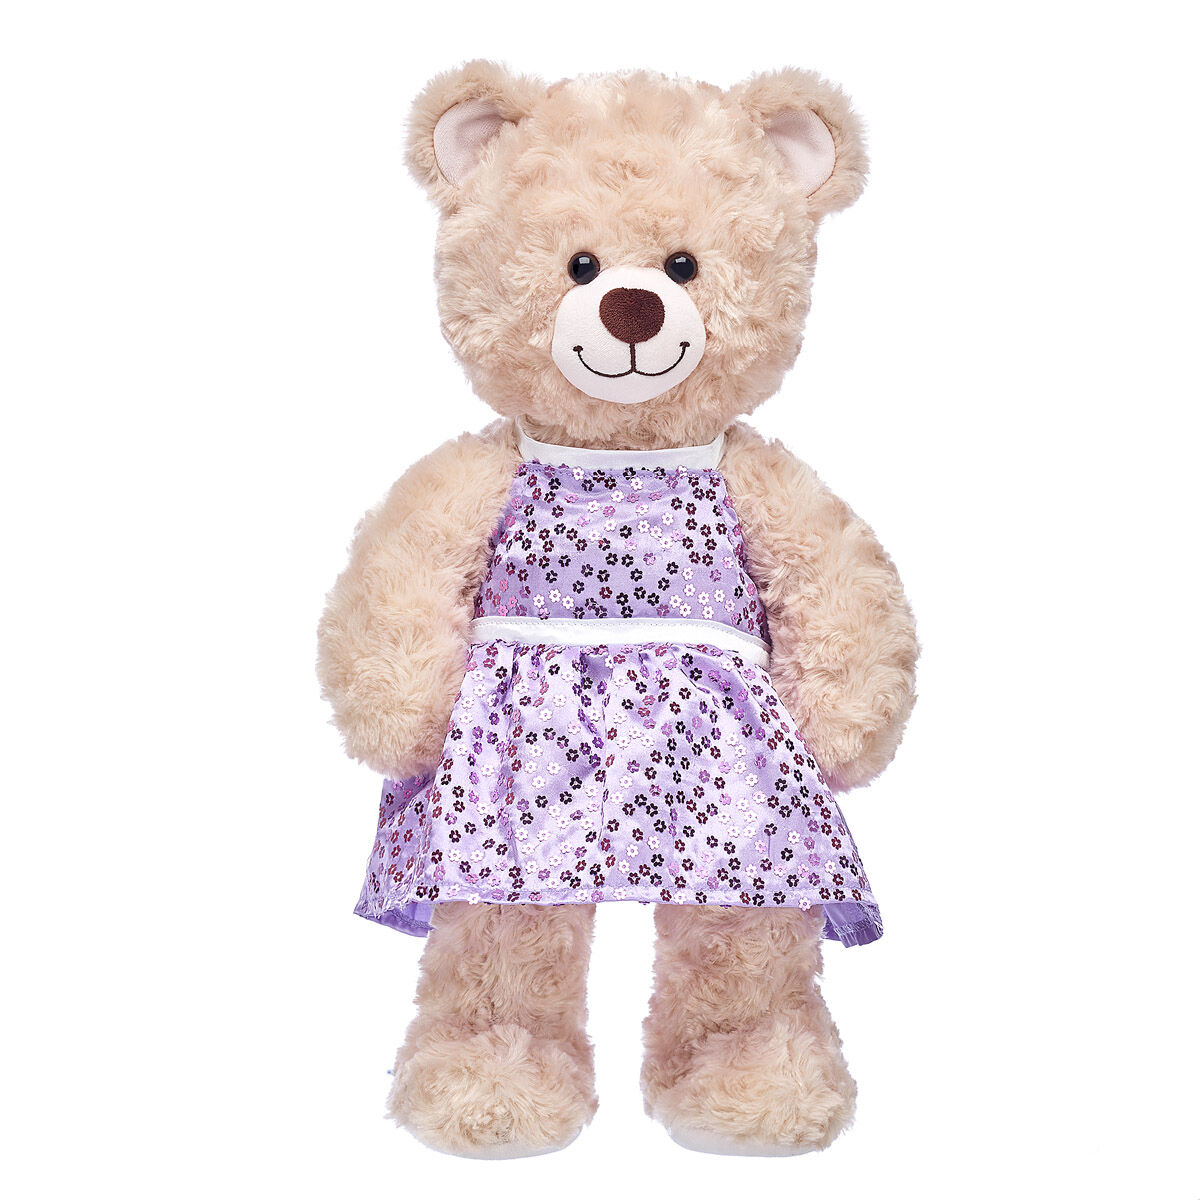 """PURPLE BALLET /& SHOES OUTFIT FOR 16/""""//40cm TEDDY BEARS /& BUILD YOUR OWN BEARS"""